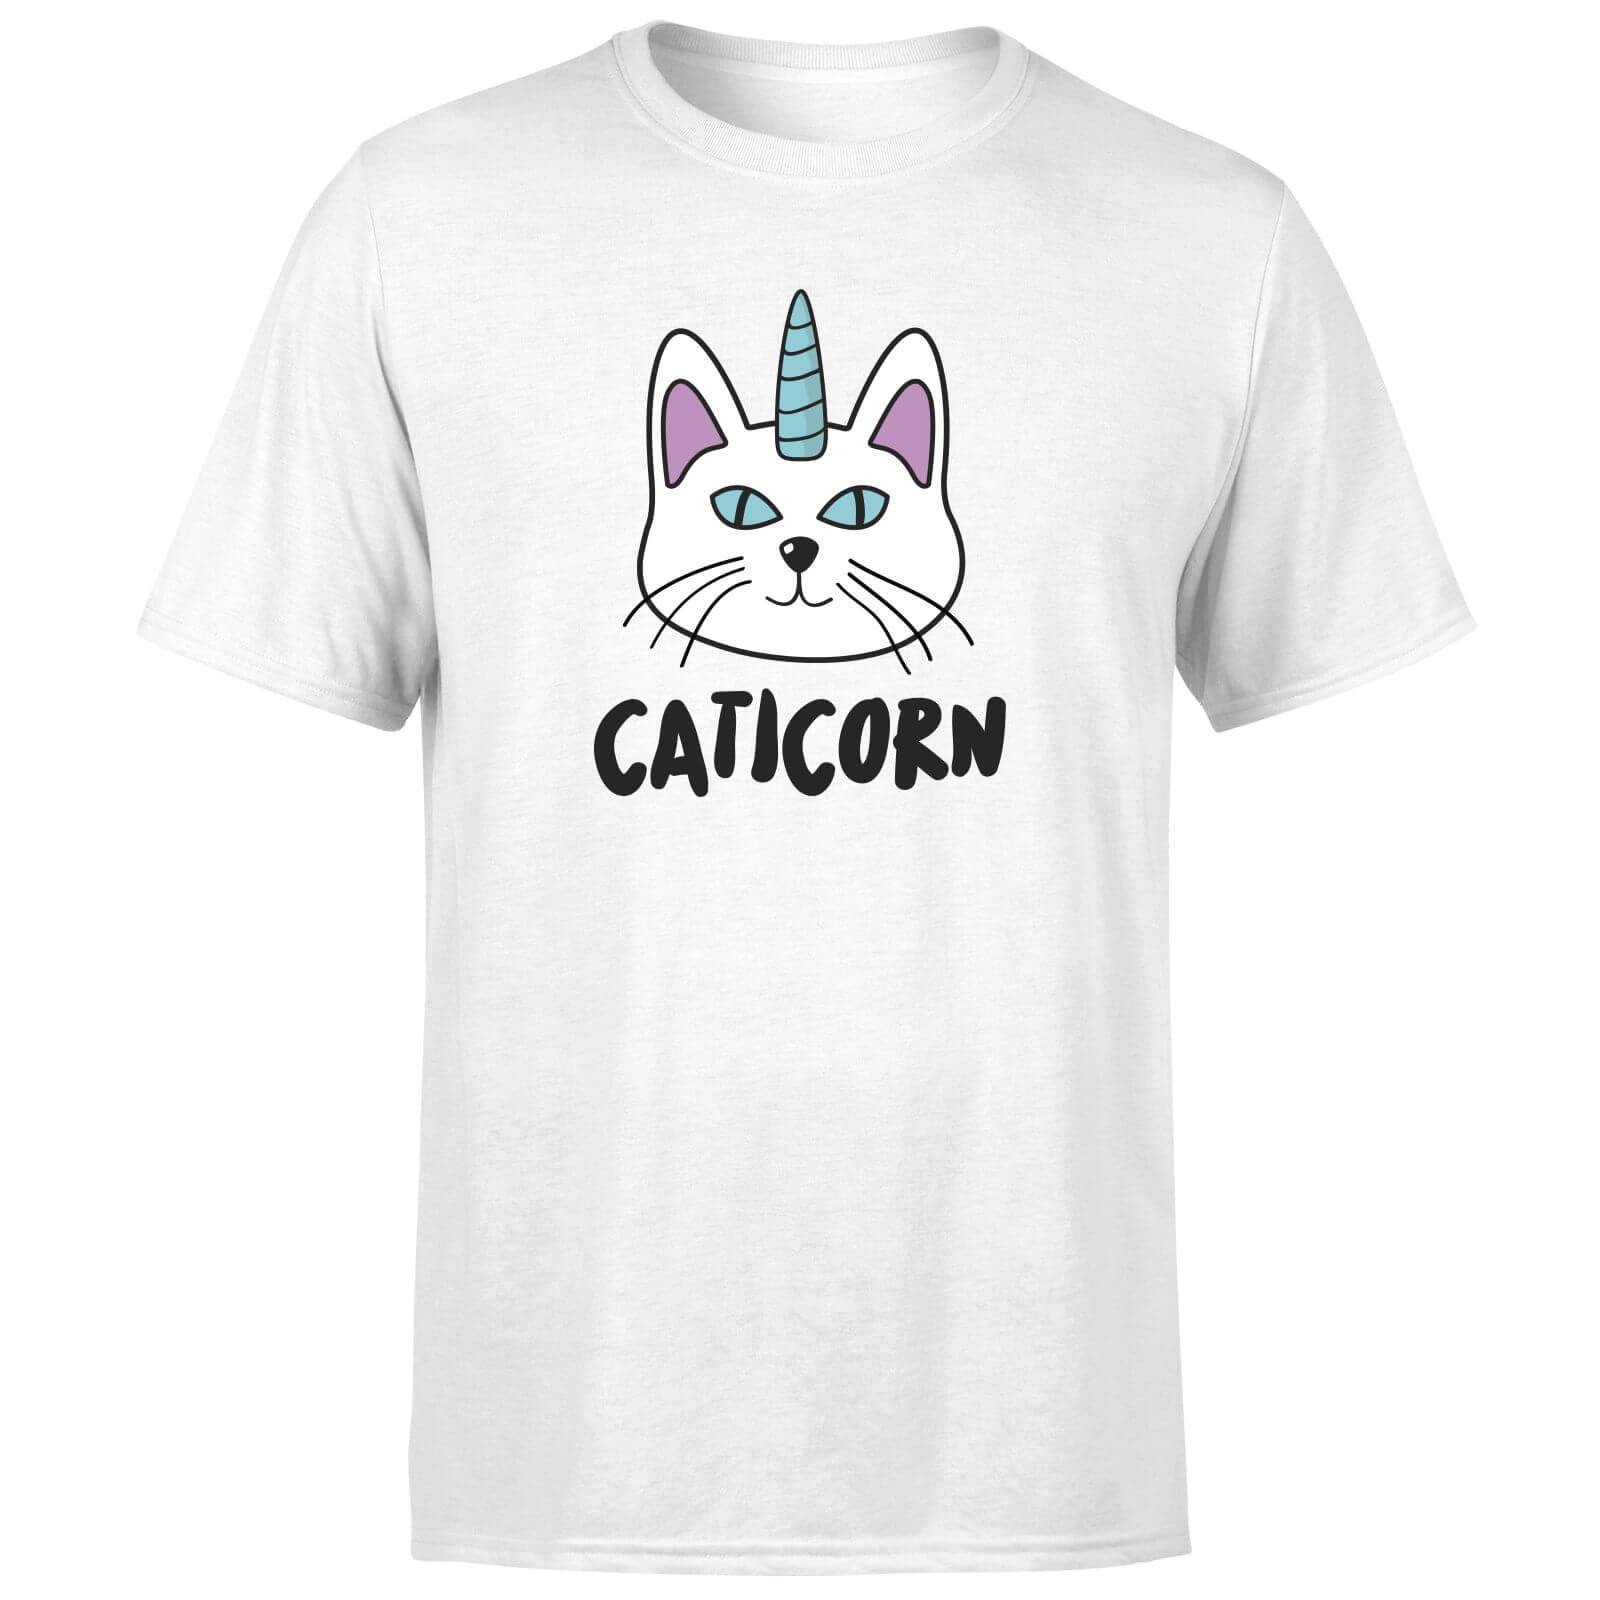 The Pet Collection Caticorn T-Shirt - White - 5XL - White